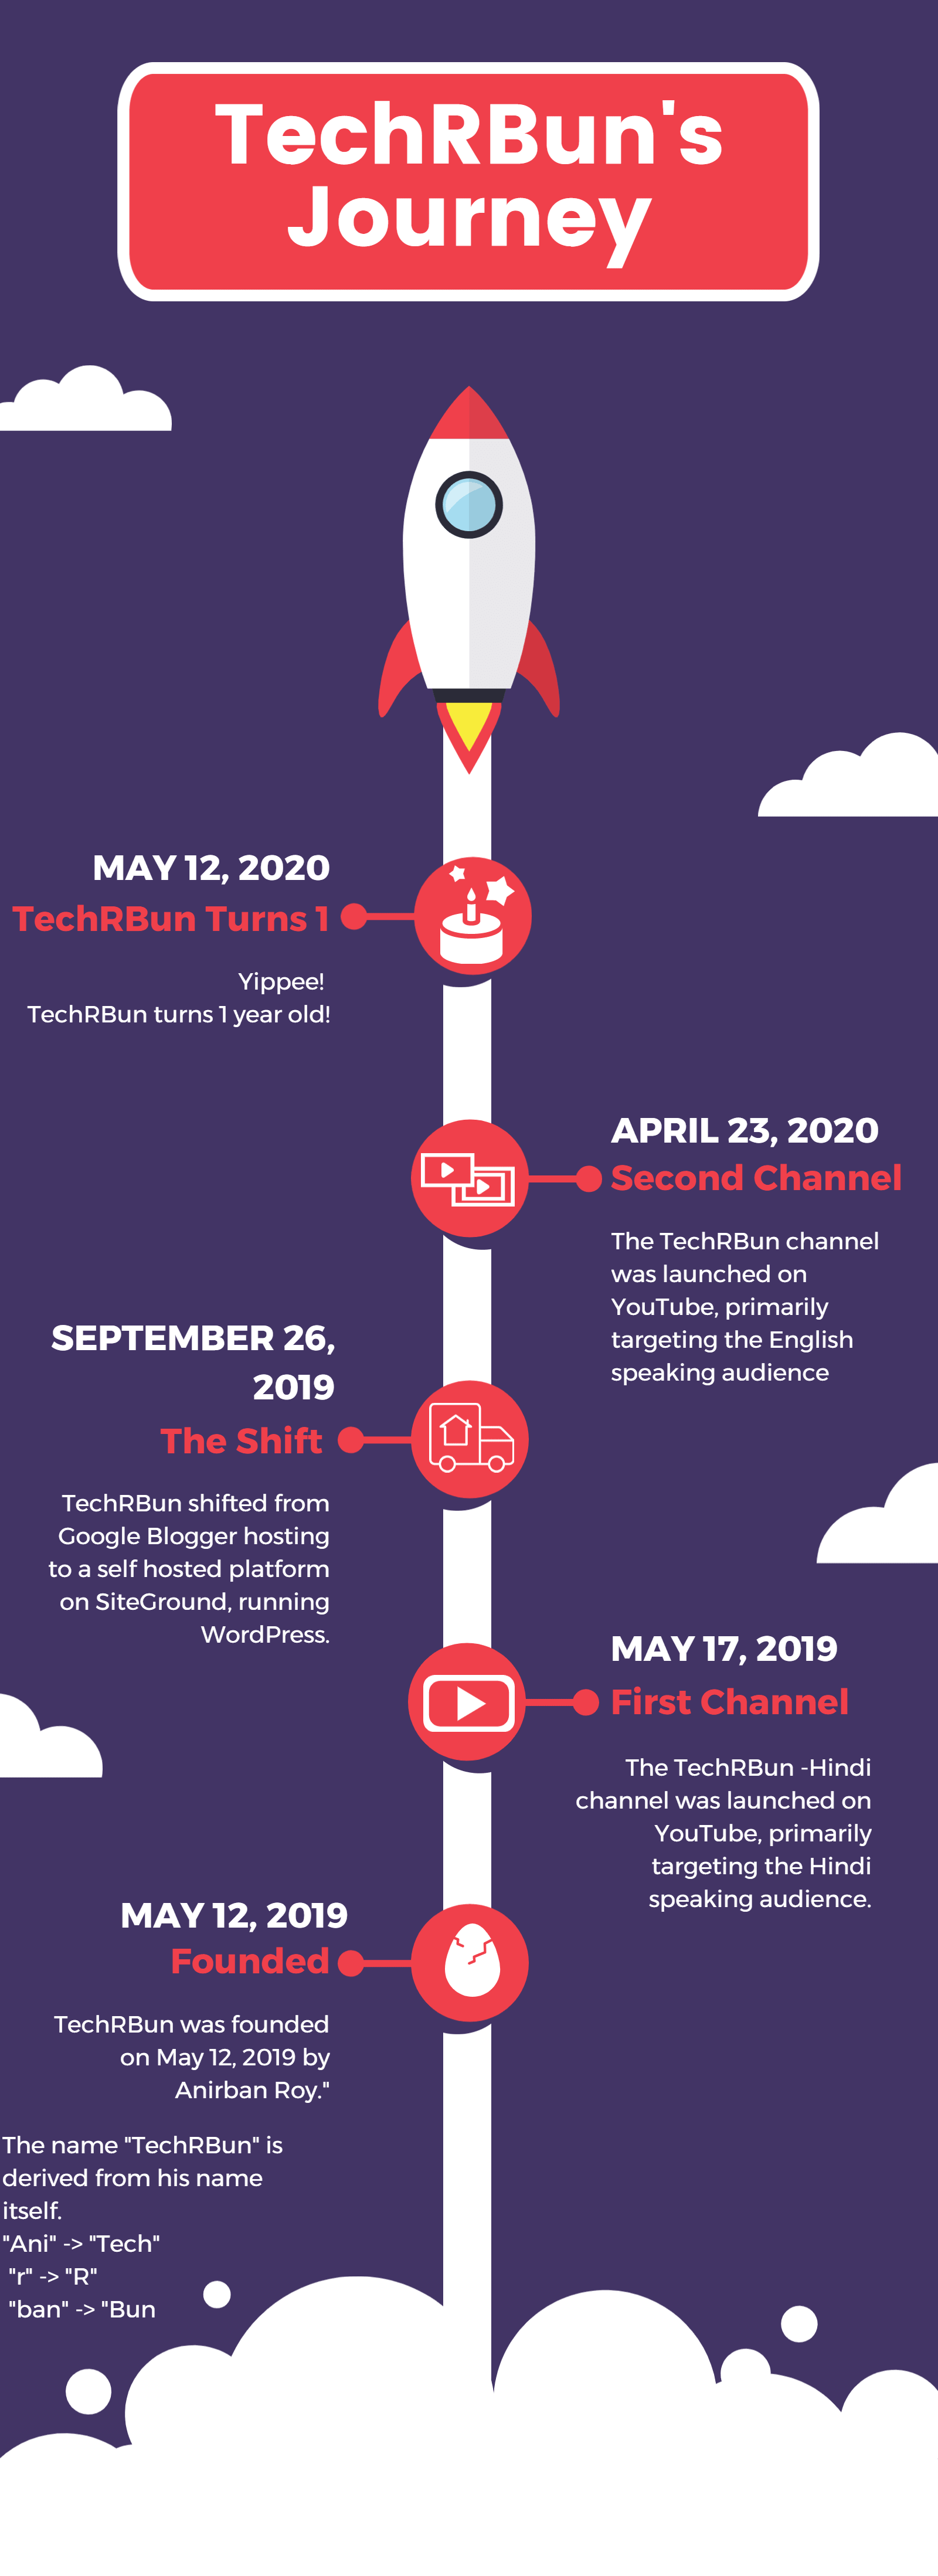 TechRBun's Journey Infographic made using DesignCap